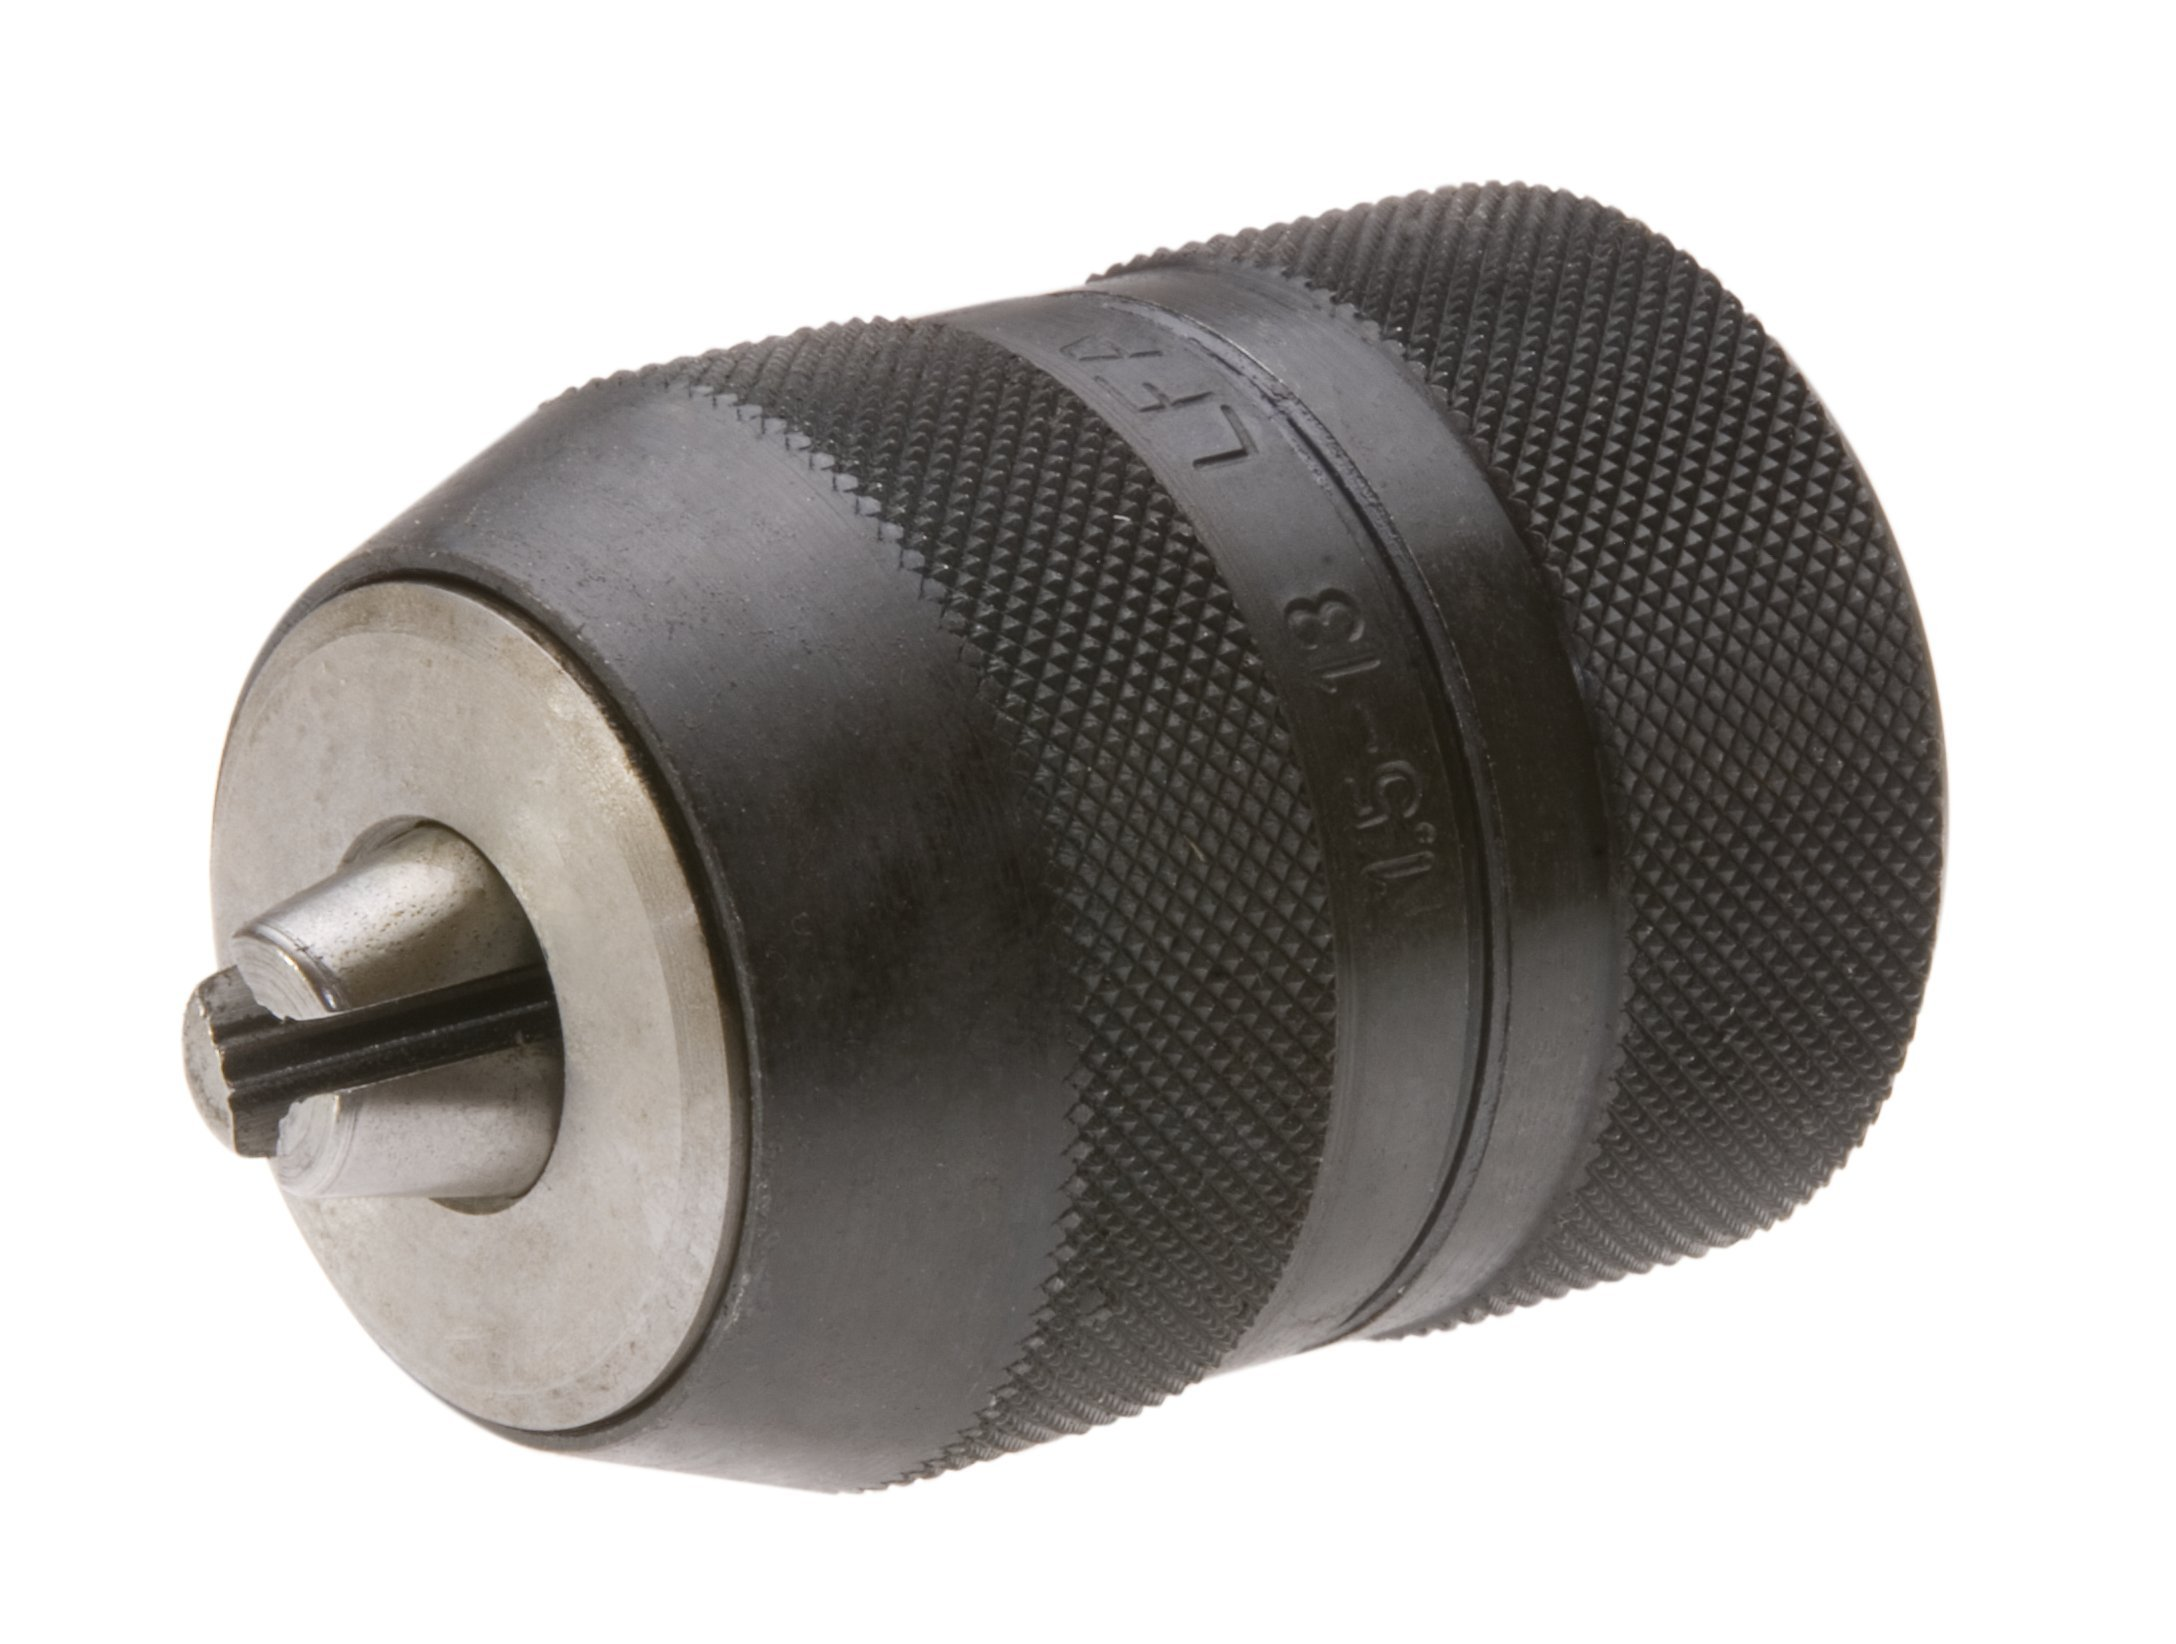 LFA Industries 520-2JT 0-3/8-Inch -.5-10 mm Capacity, 2 Jacobs Taper Mount Keyless All Steel Ball Bearing with Super Holding Drill Chuck